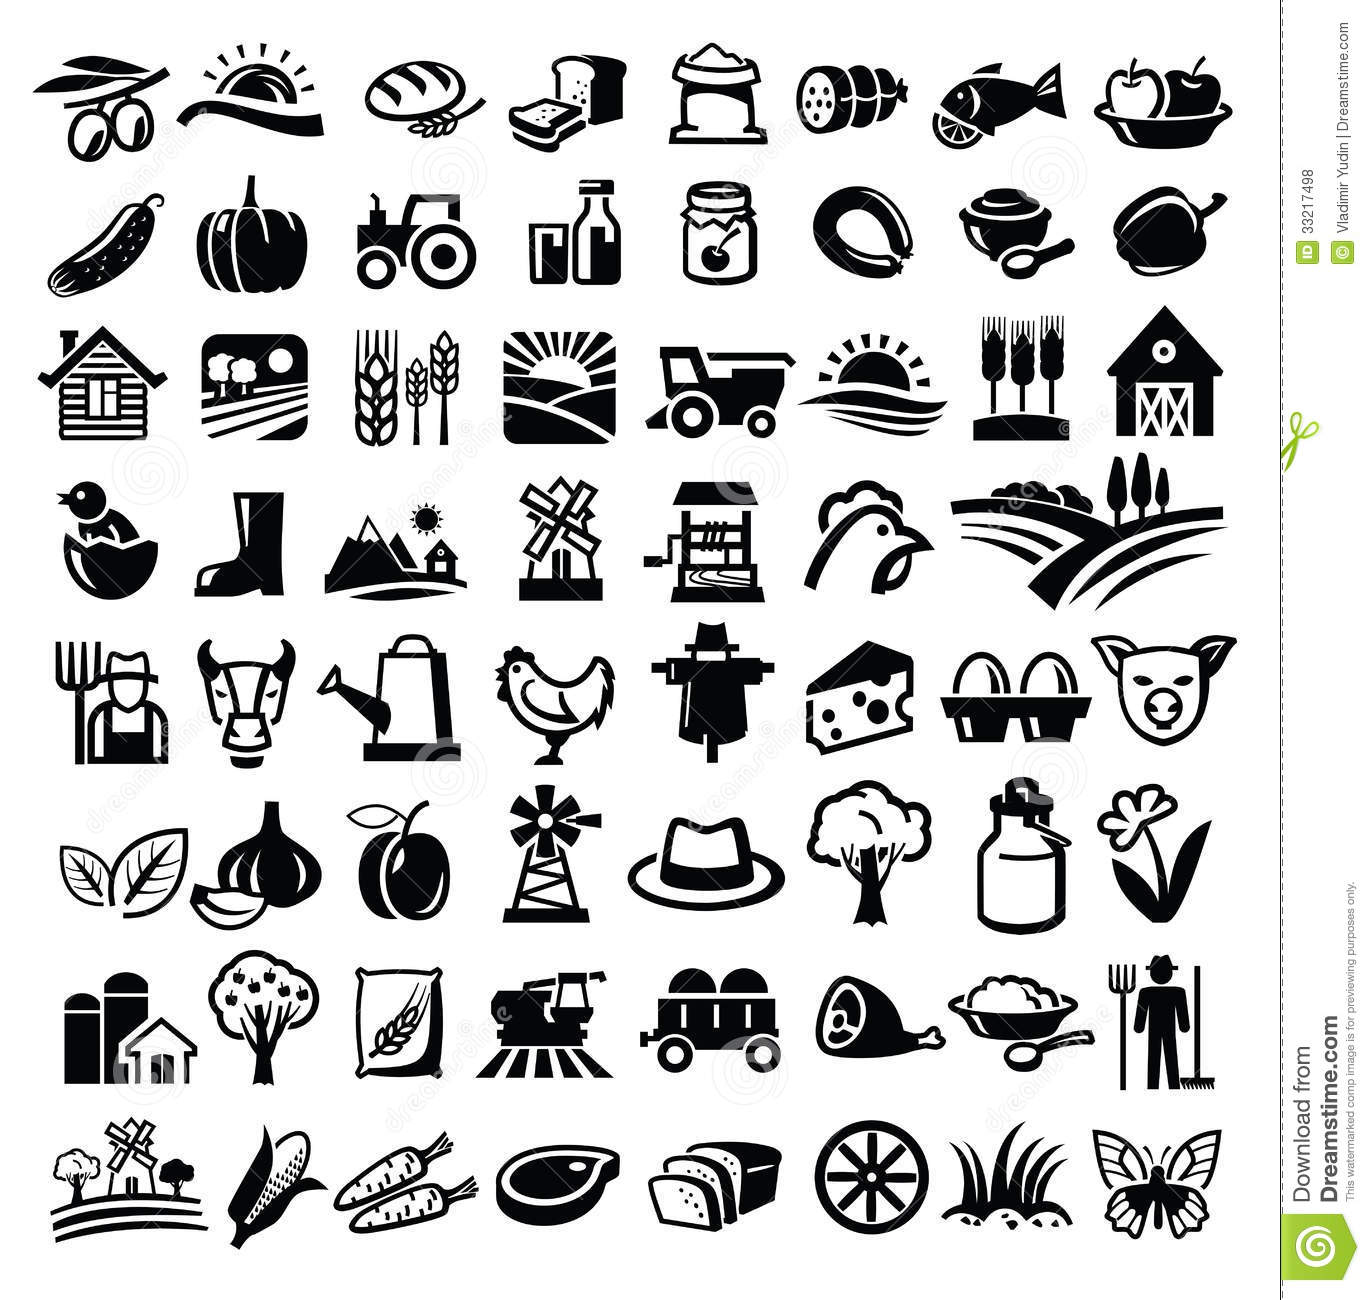 black-and-white-food-icon